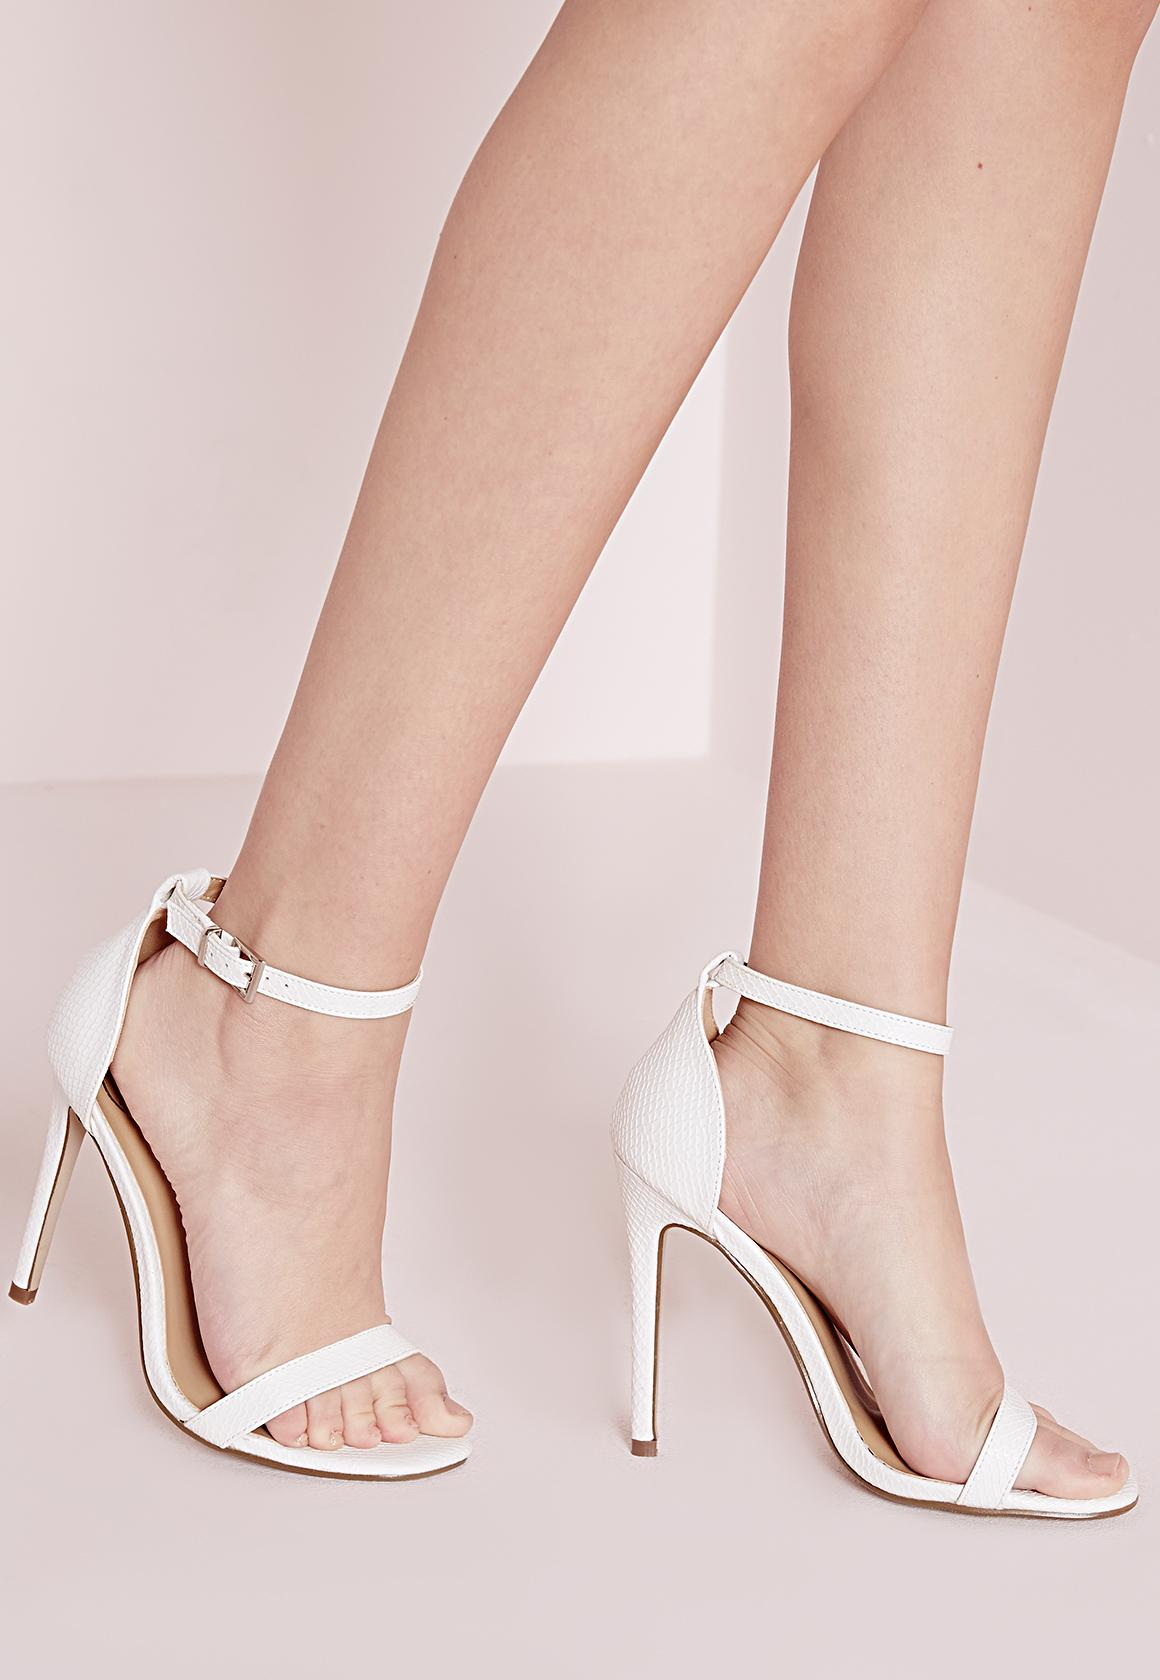 Barely There Strappy Heeled Sandals White Croc | Missguided